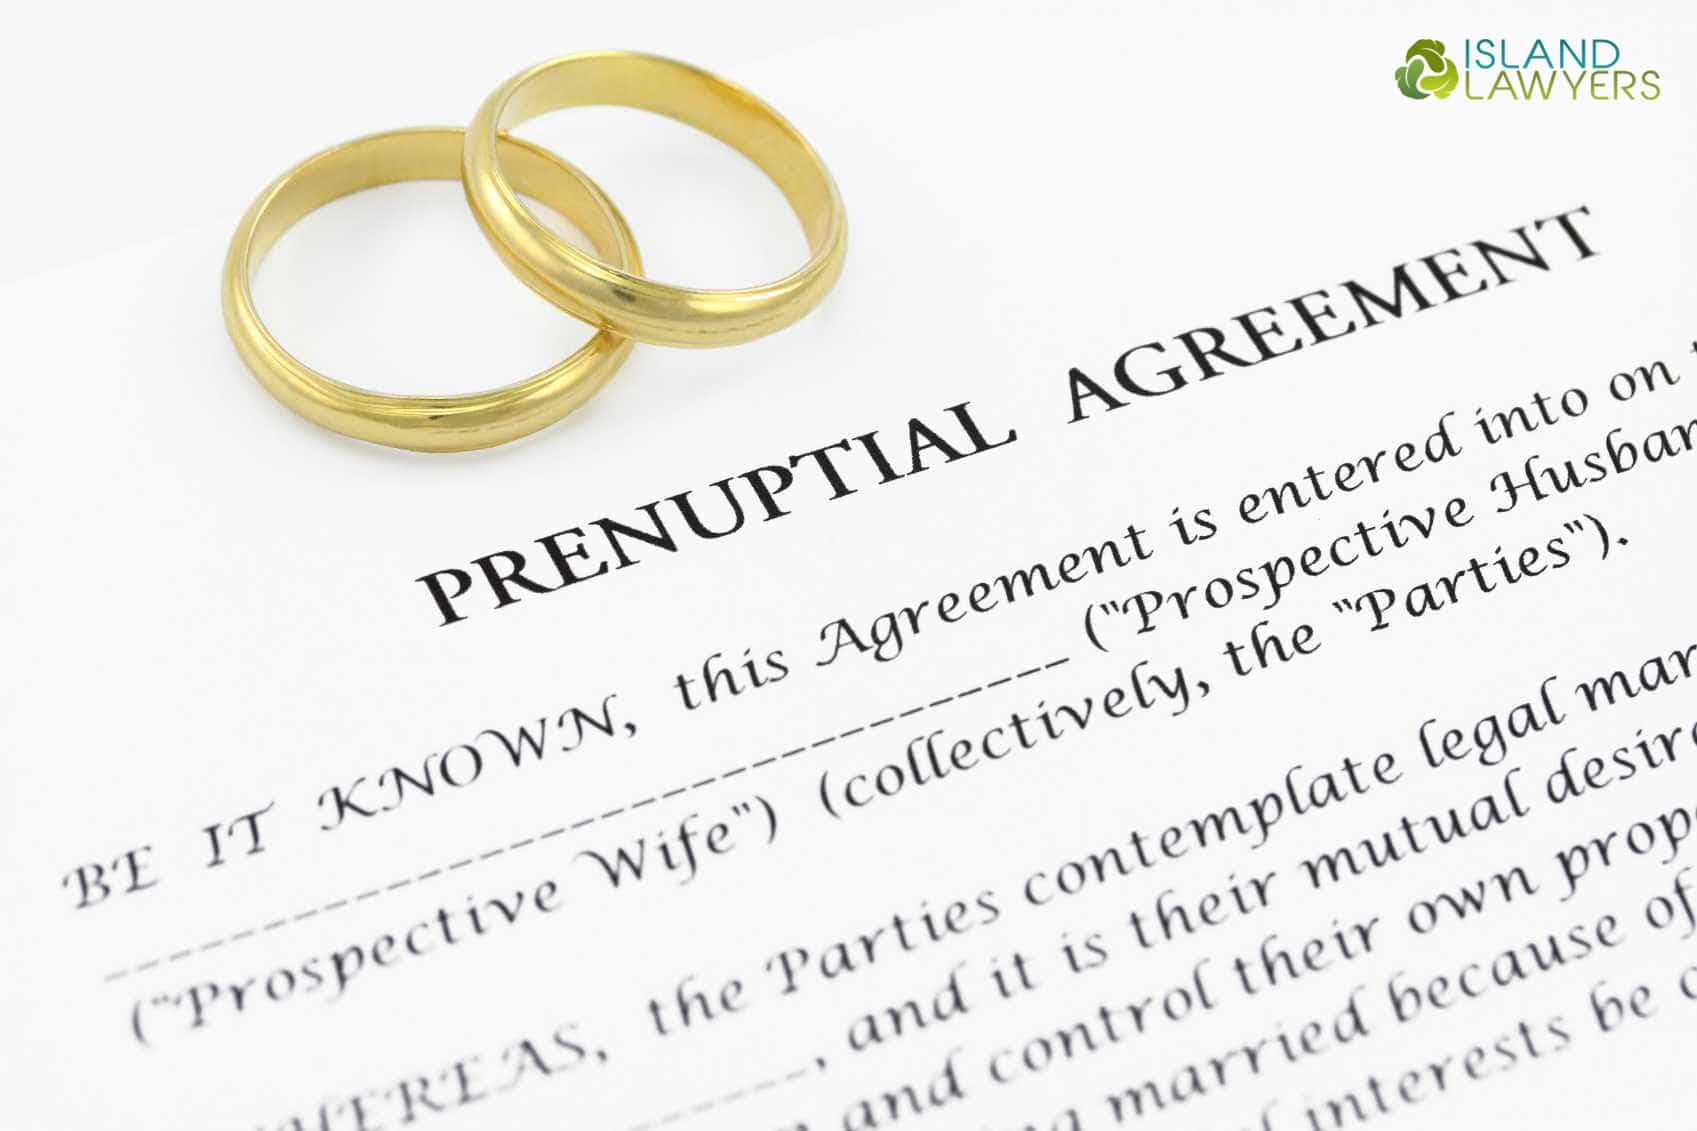 Wedding rings pictured over a prenuptial agreement